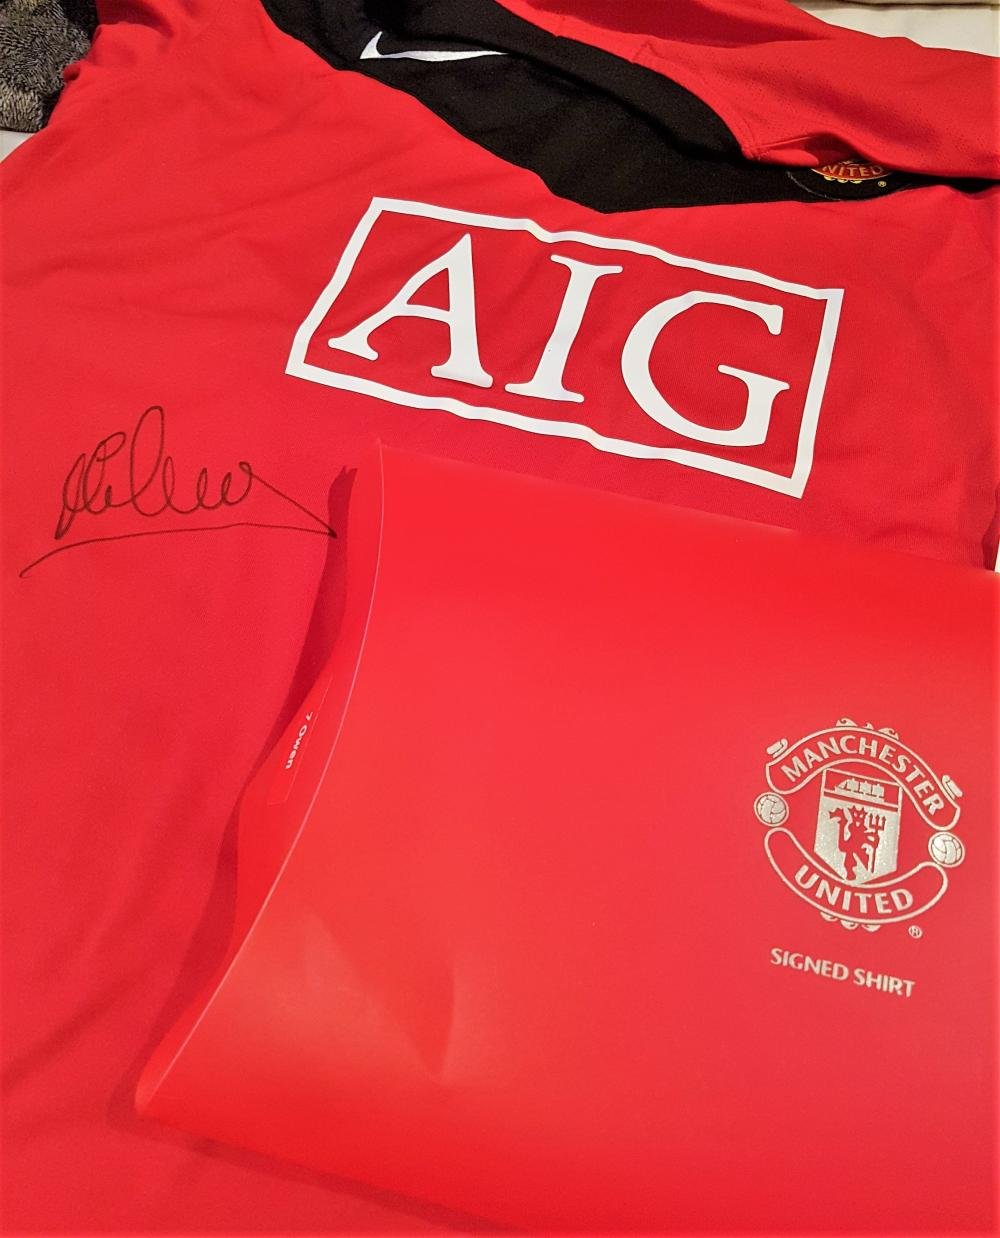 Lot 129: Manchester United Signed Michael Owen Shirt - Michael James Owen (born 14 December 1979) is an English former footballer who played as a striker for Liverpool, Real Madrid, Newcastle United, Manchester United and Stoke City, as well as for